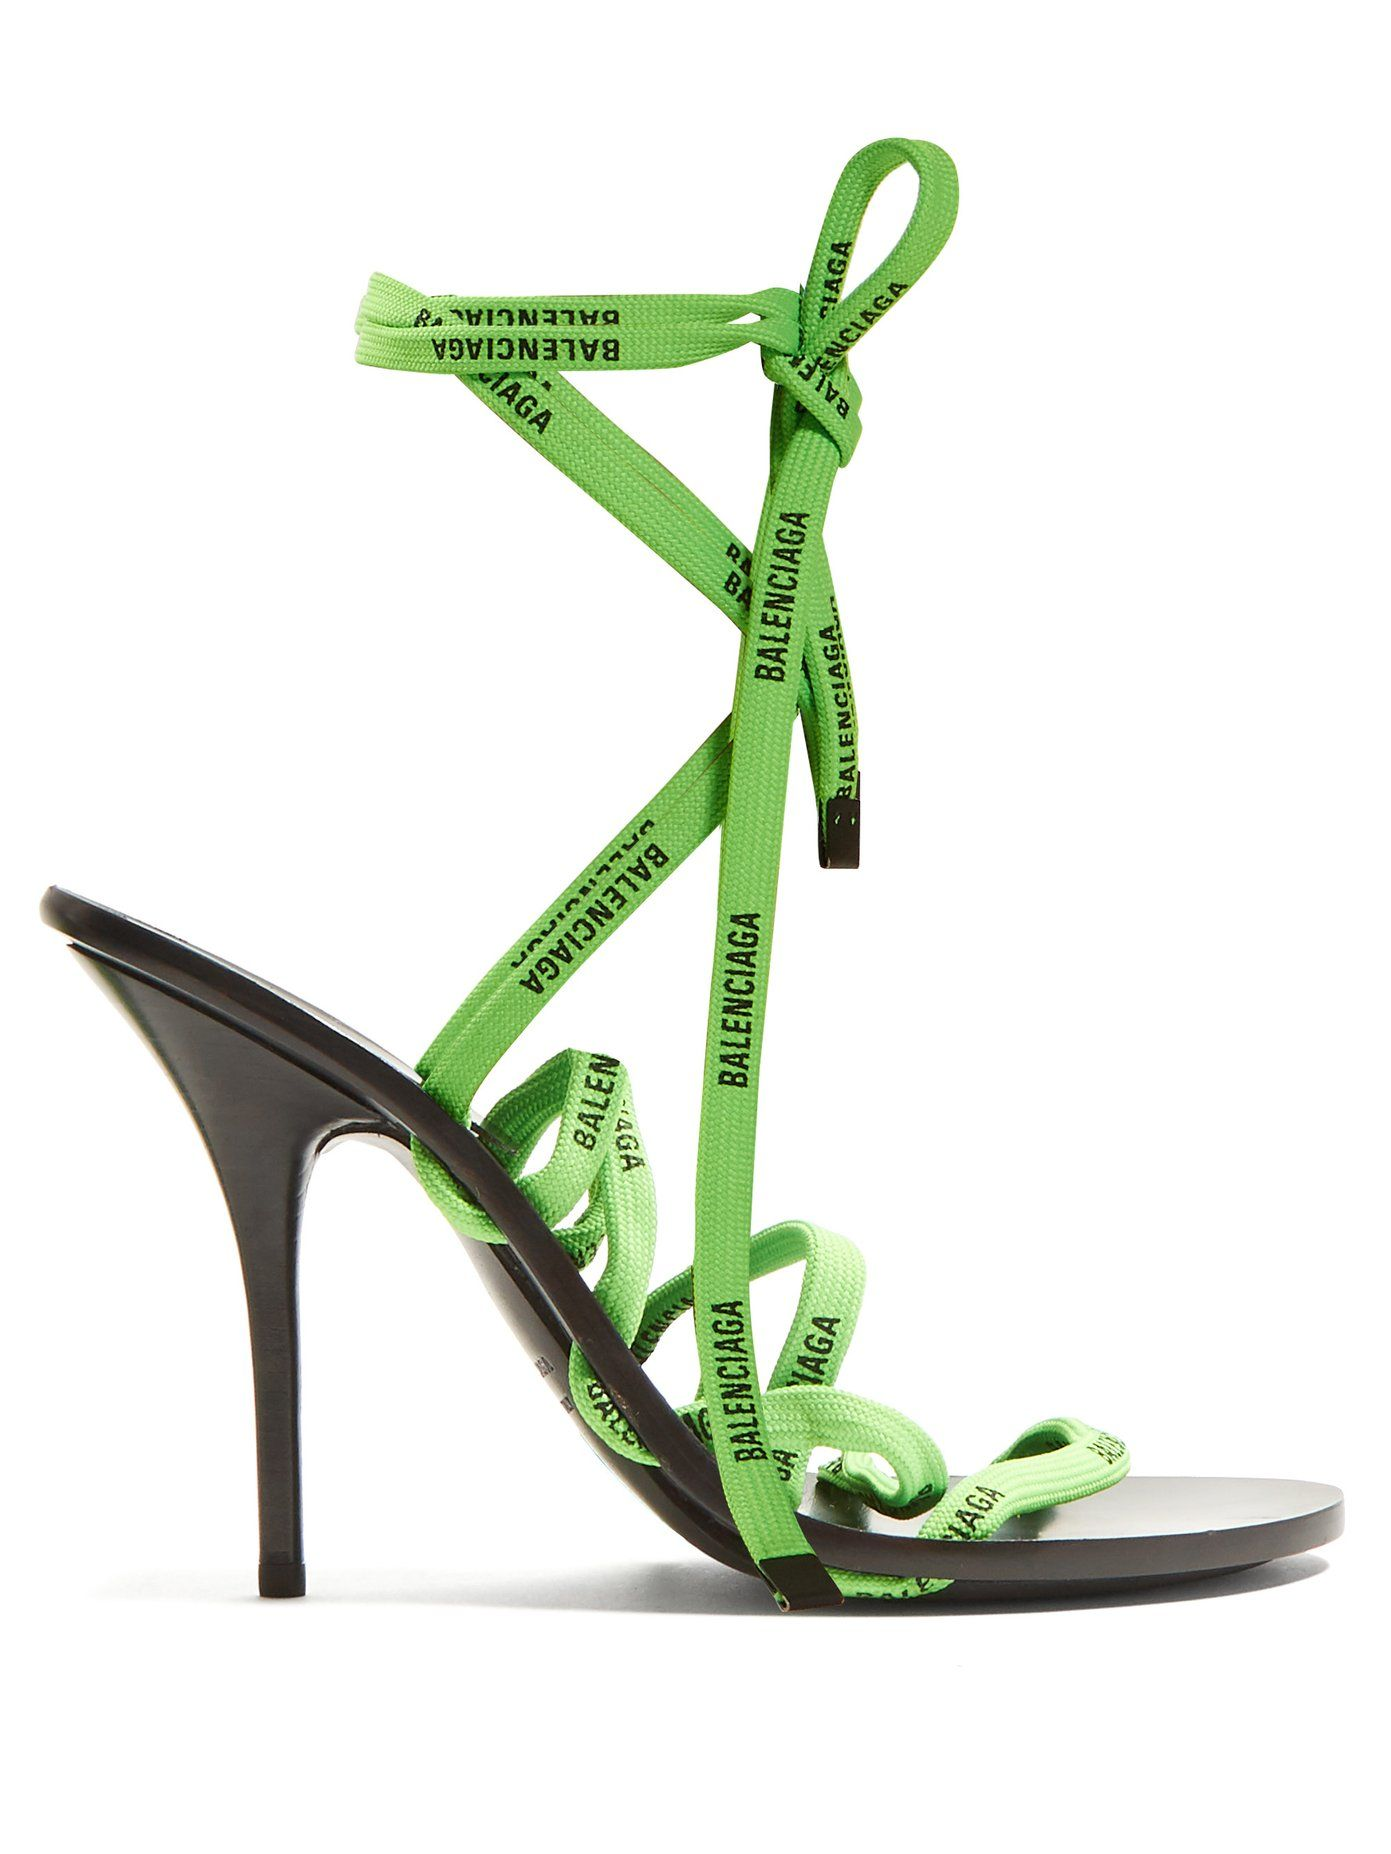 8f8bd9d249 Logo-laced wrap-around high-heeled sandals | Balenciaga | Shoes with ...